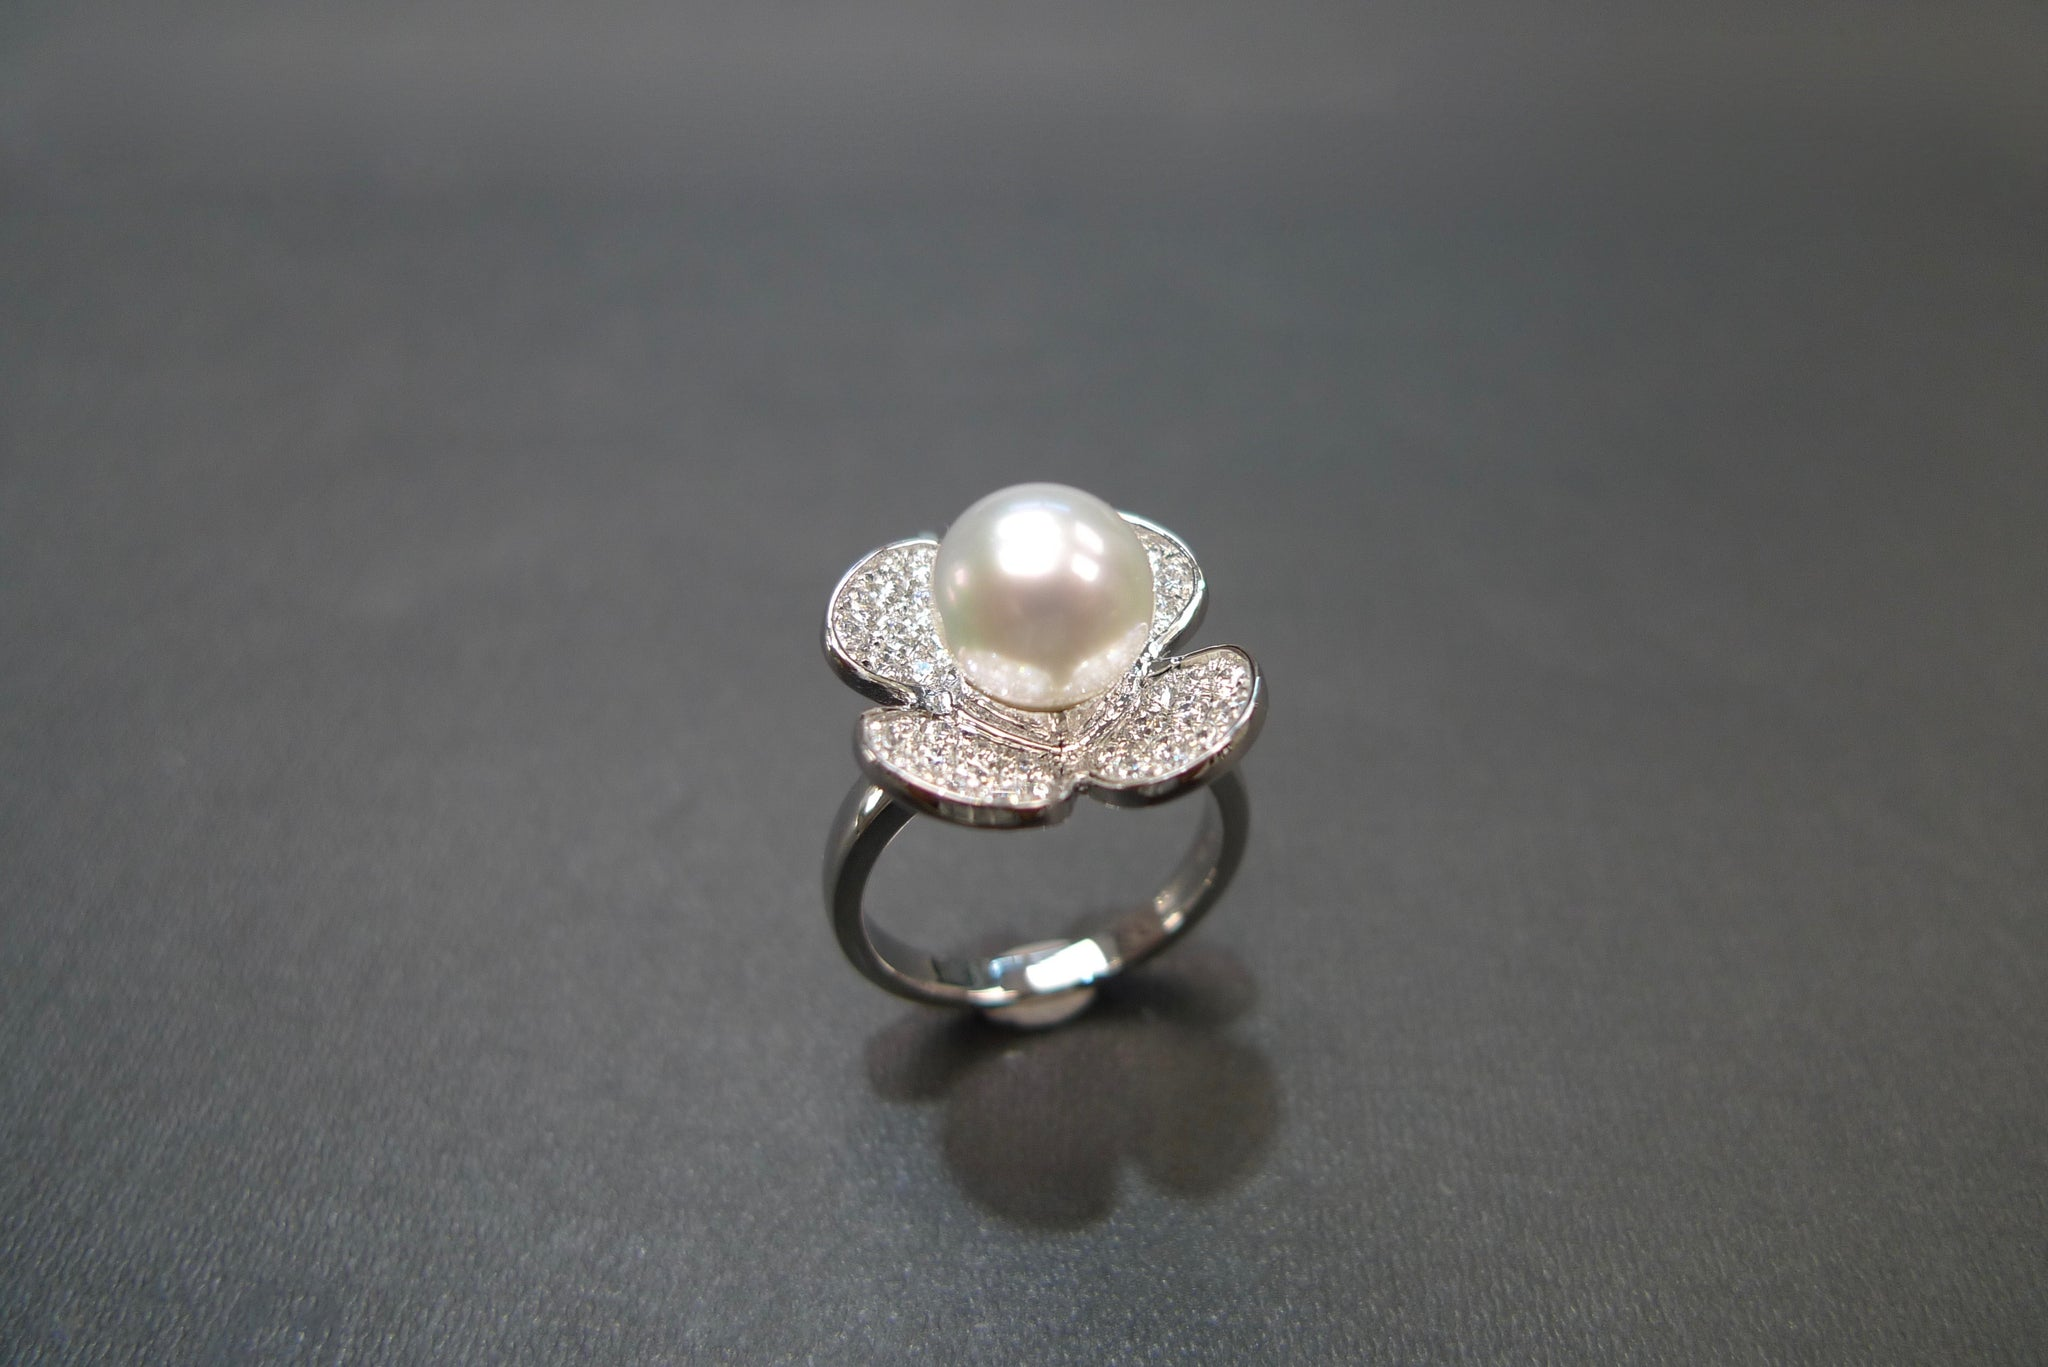 White Pearl & Diamond Floral Ring in 18K White Gold - HN JEWELRY